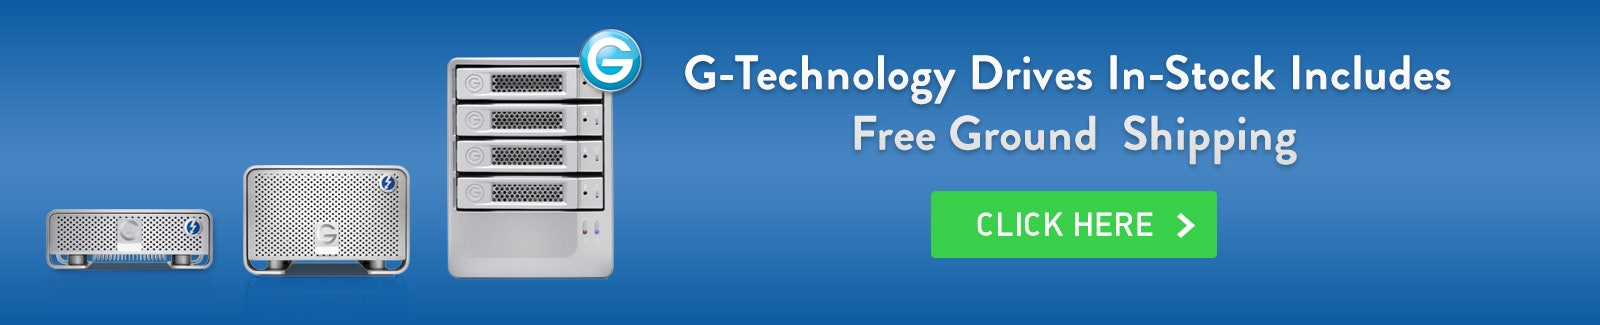 G-Tech Free Ground Shipping